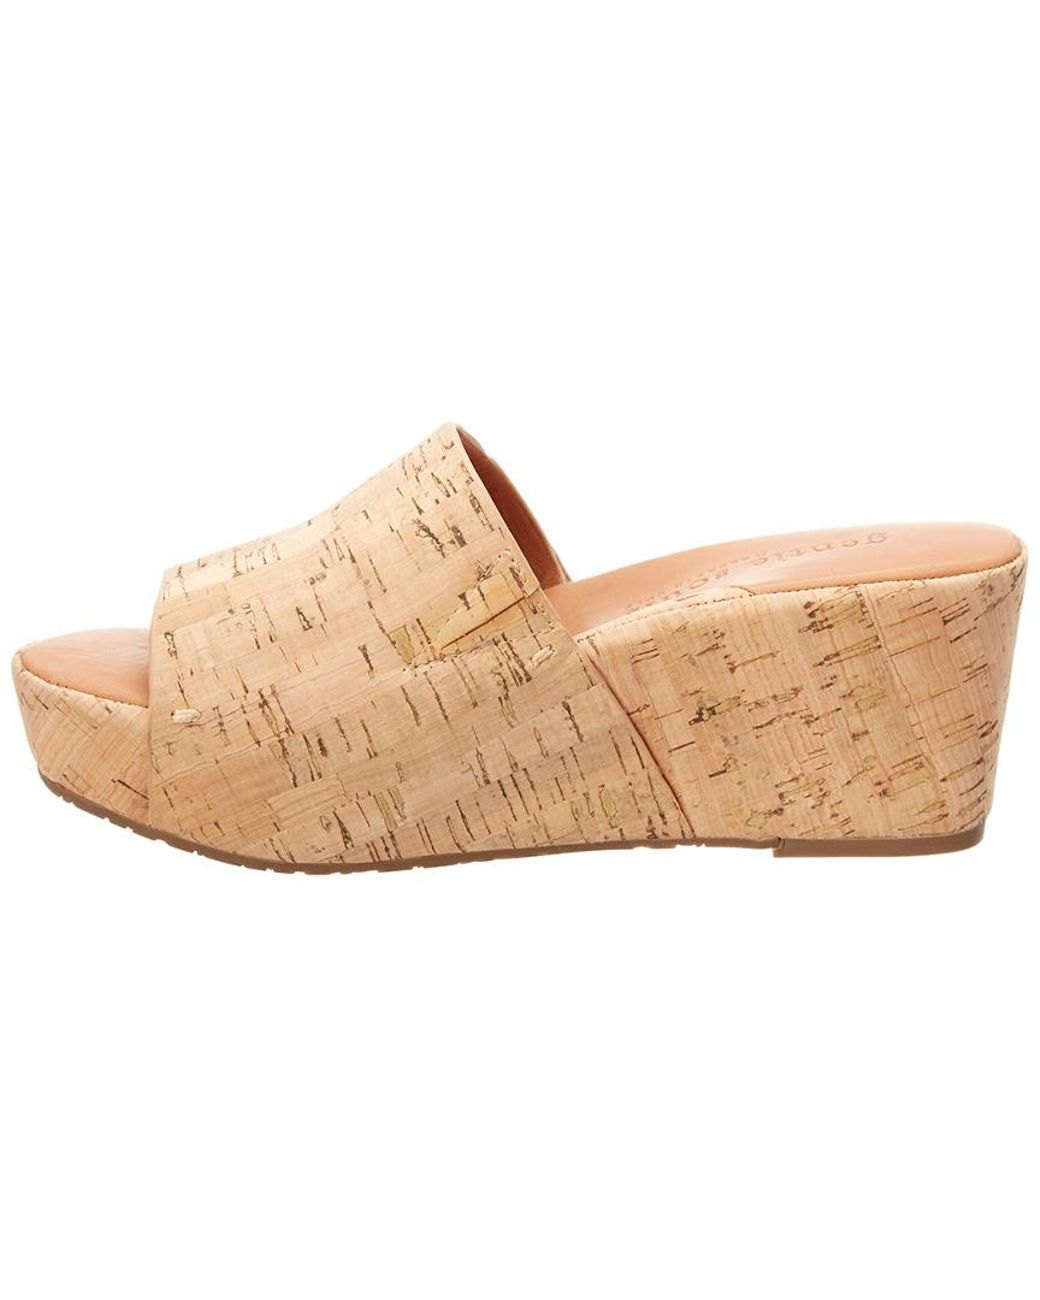 2a4b1ced59 Lyst - Gentle Souls Forella Cork Wedge Sandal in Natural - Save 52%